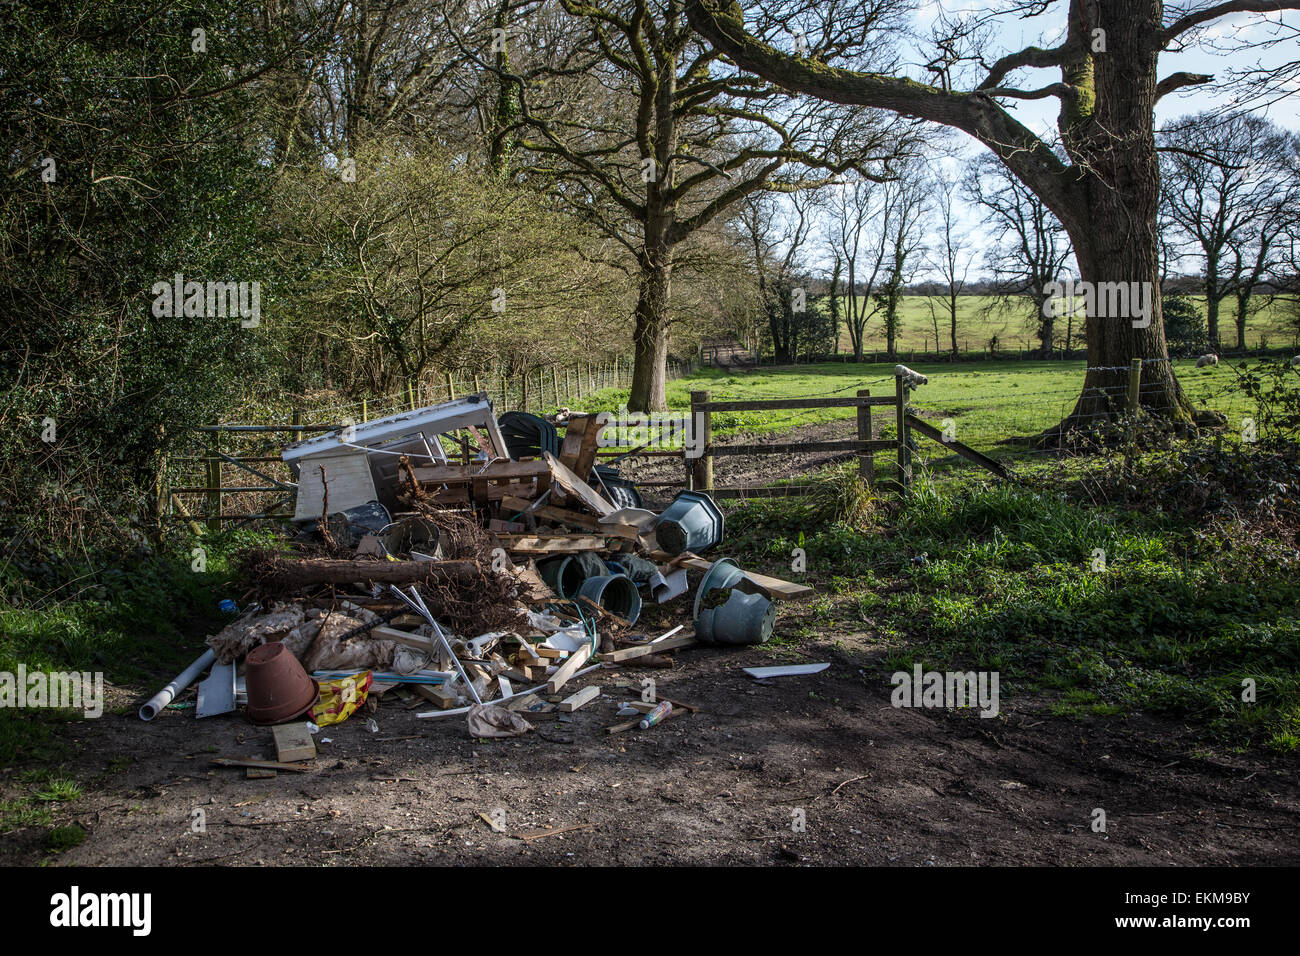 Fly-tipping in the Countryside - Stock Image